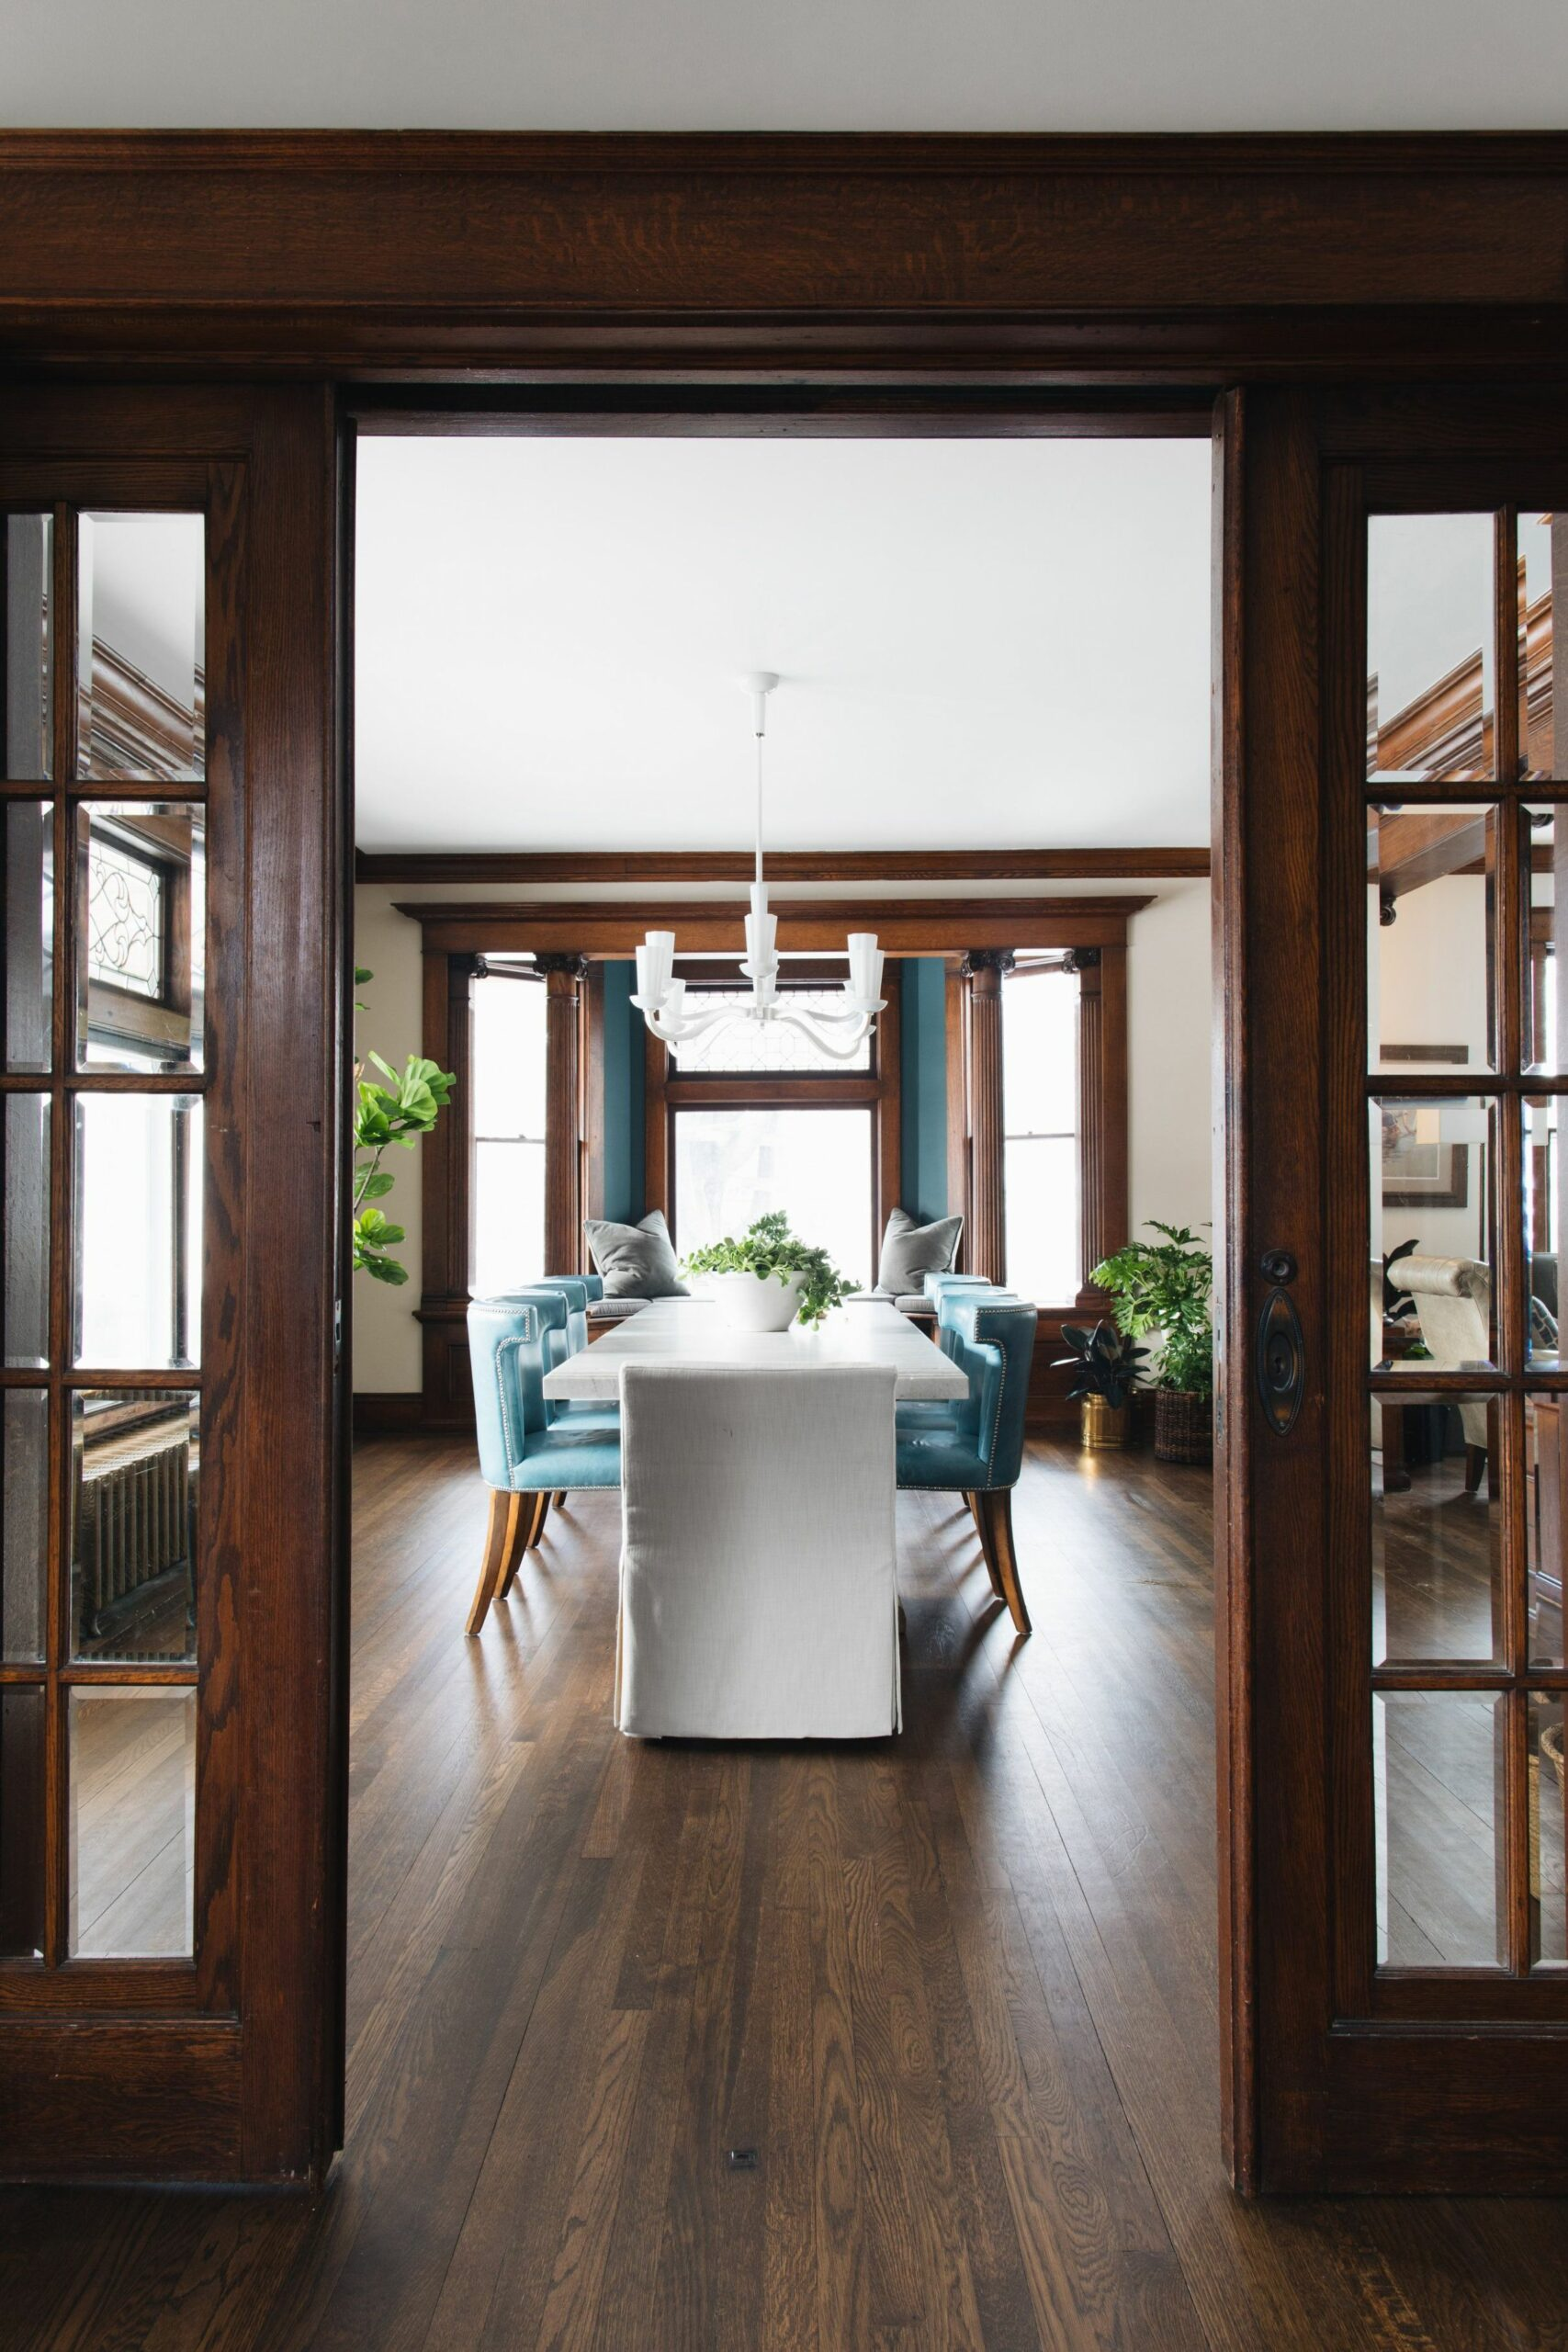 New house image by Amanda Hutchings O'Kelly in 8 | Dining room ...